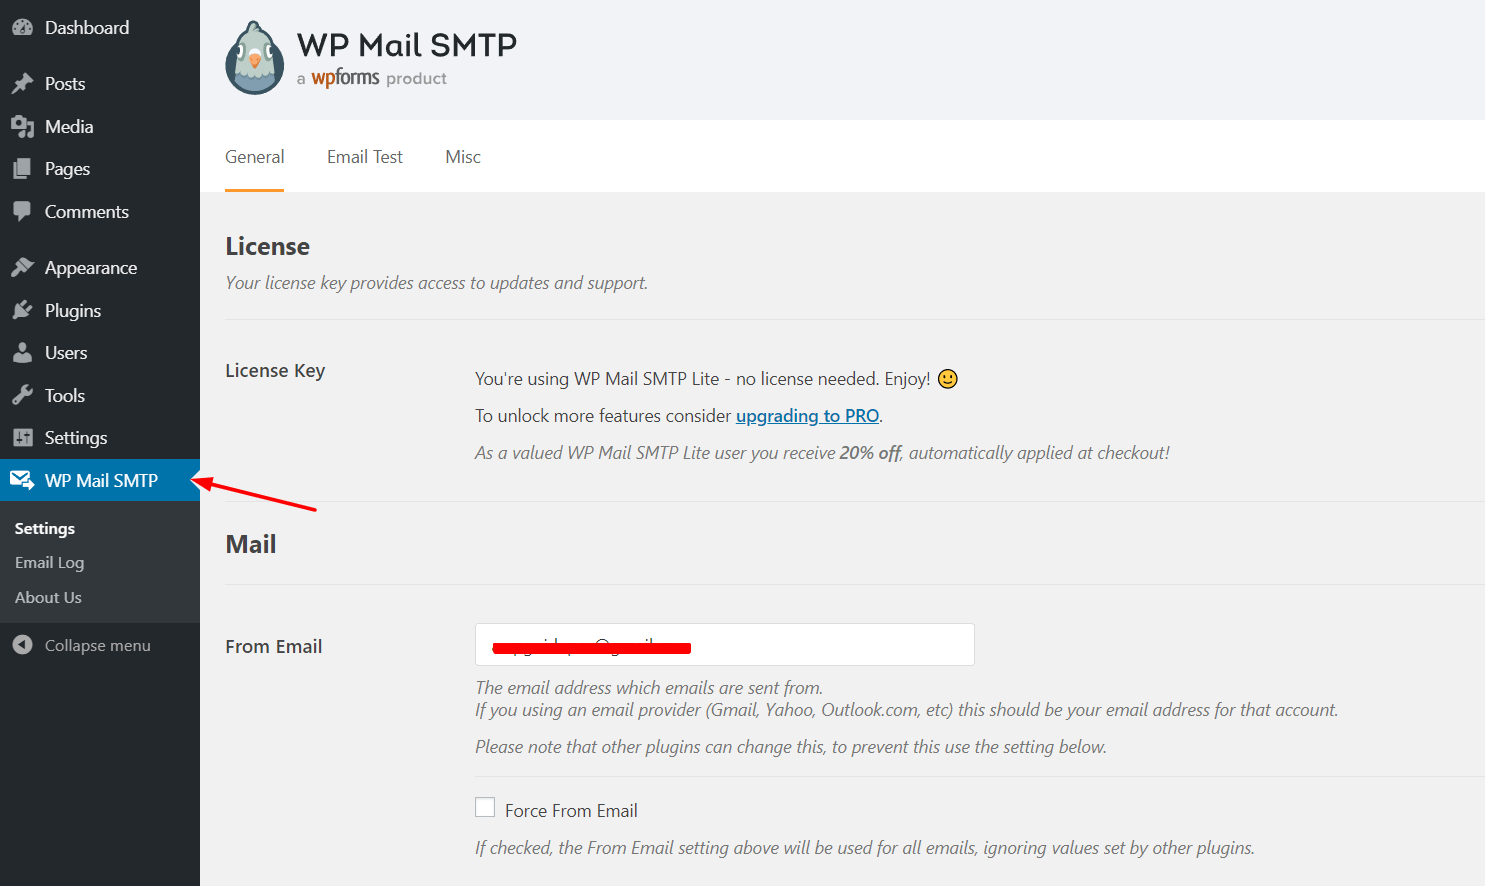 wp mail smtp plugin settings